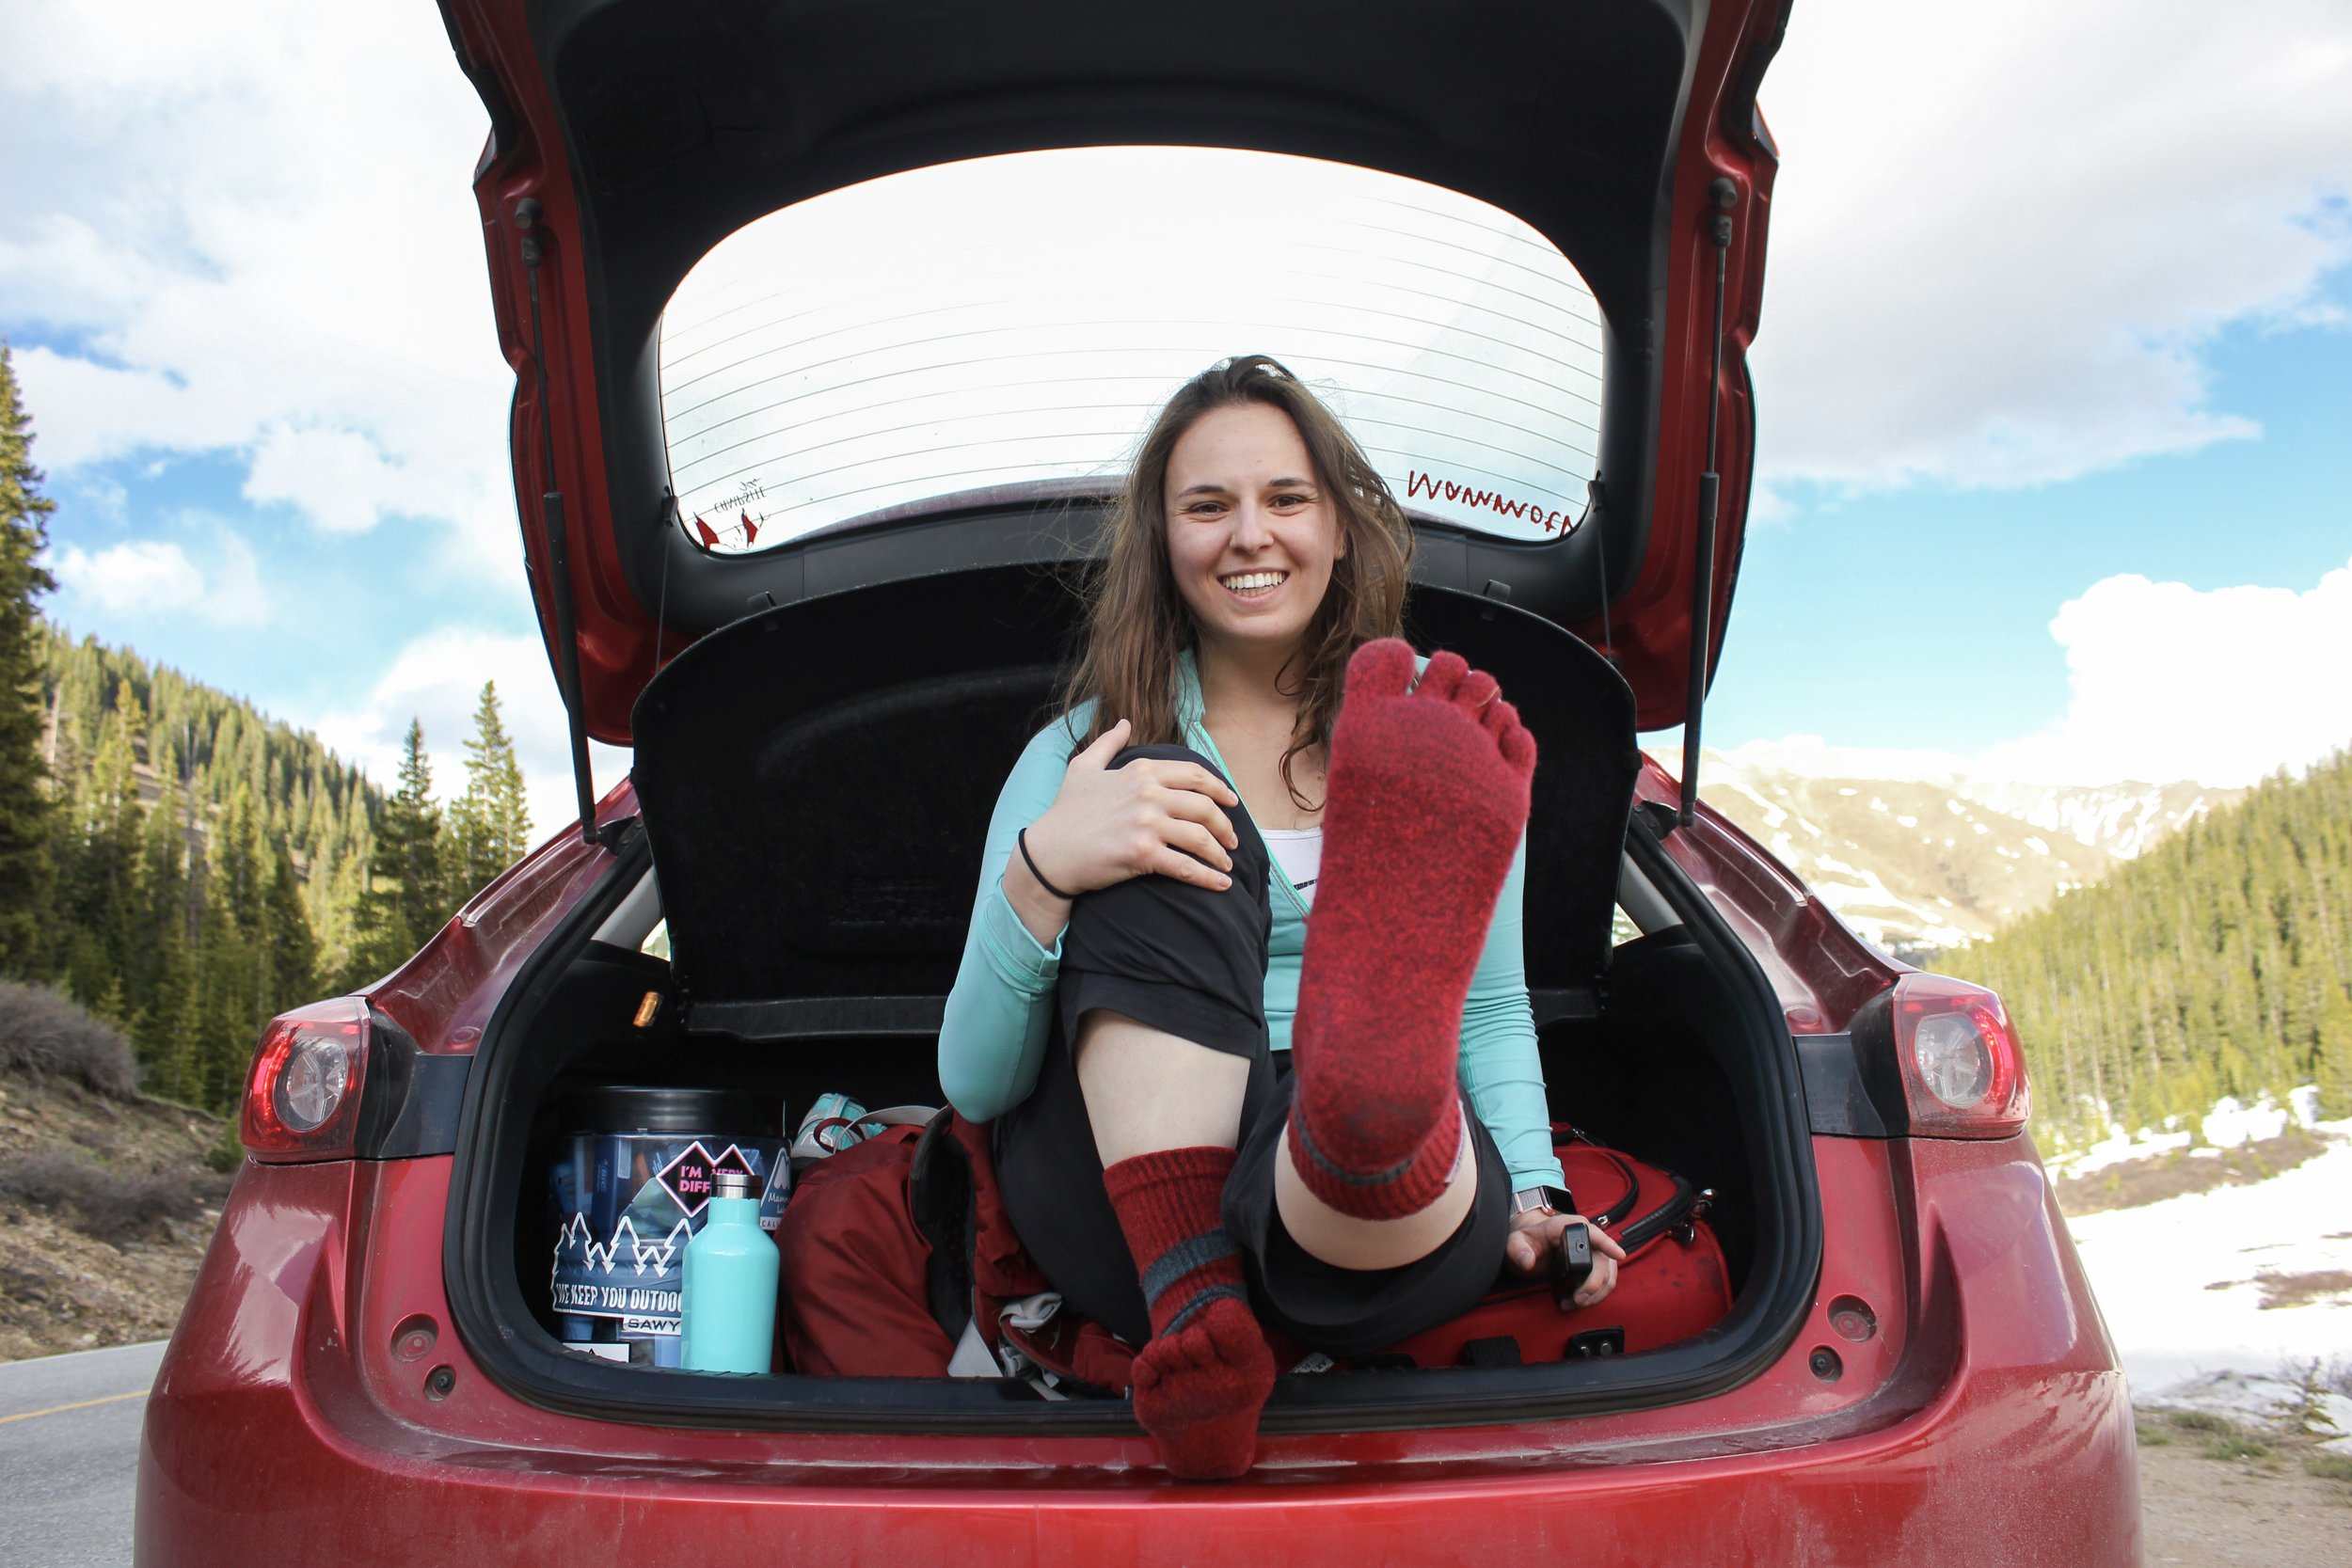 Injinji wool toe socks